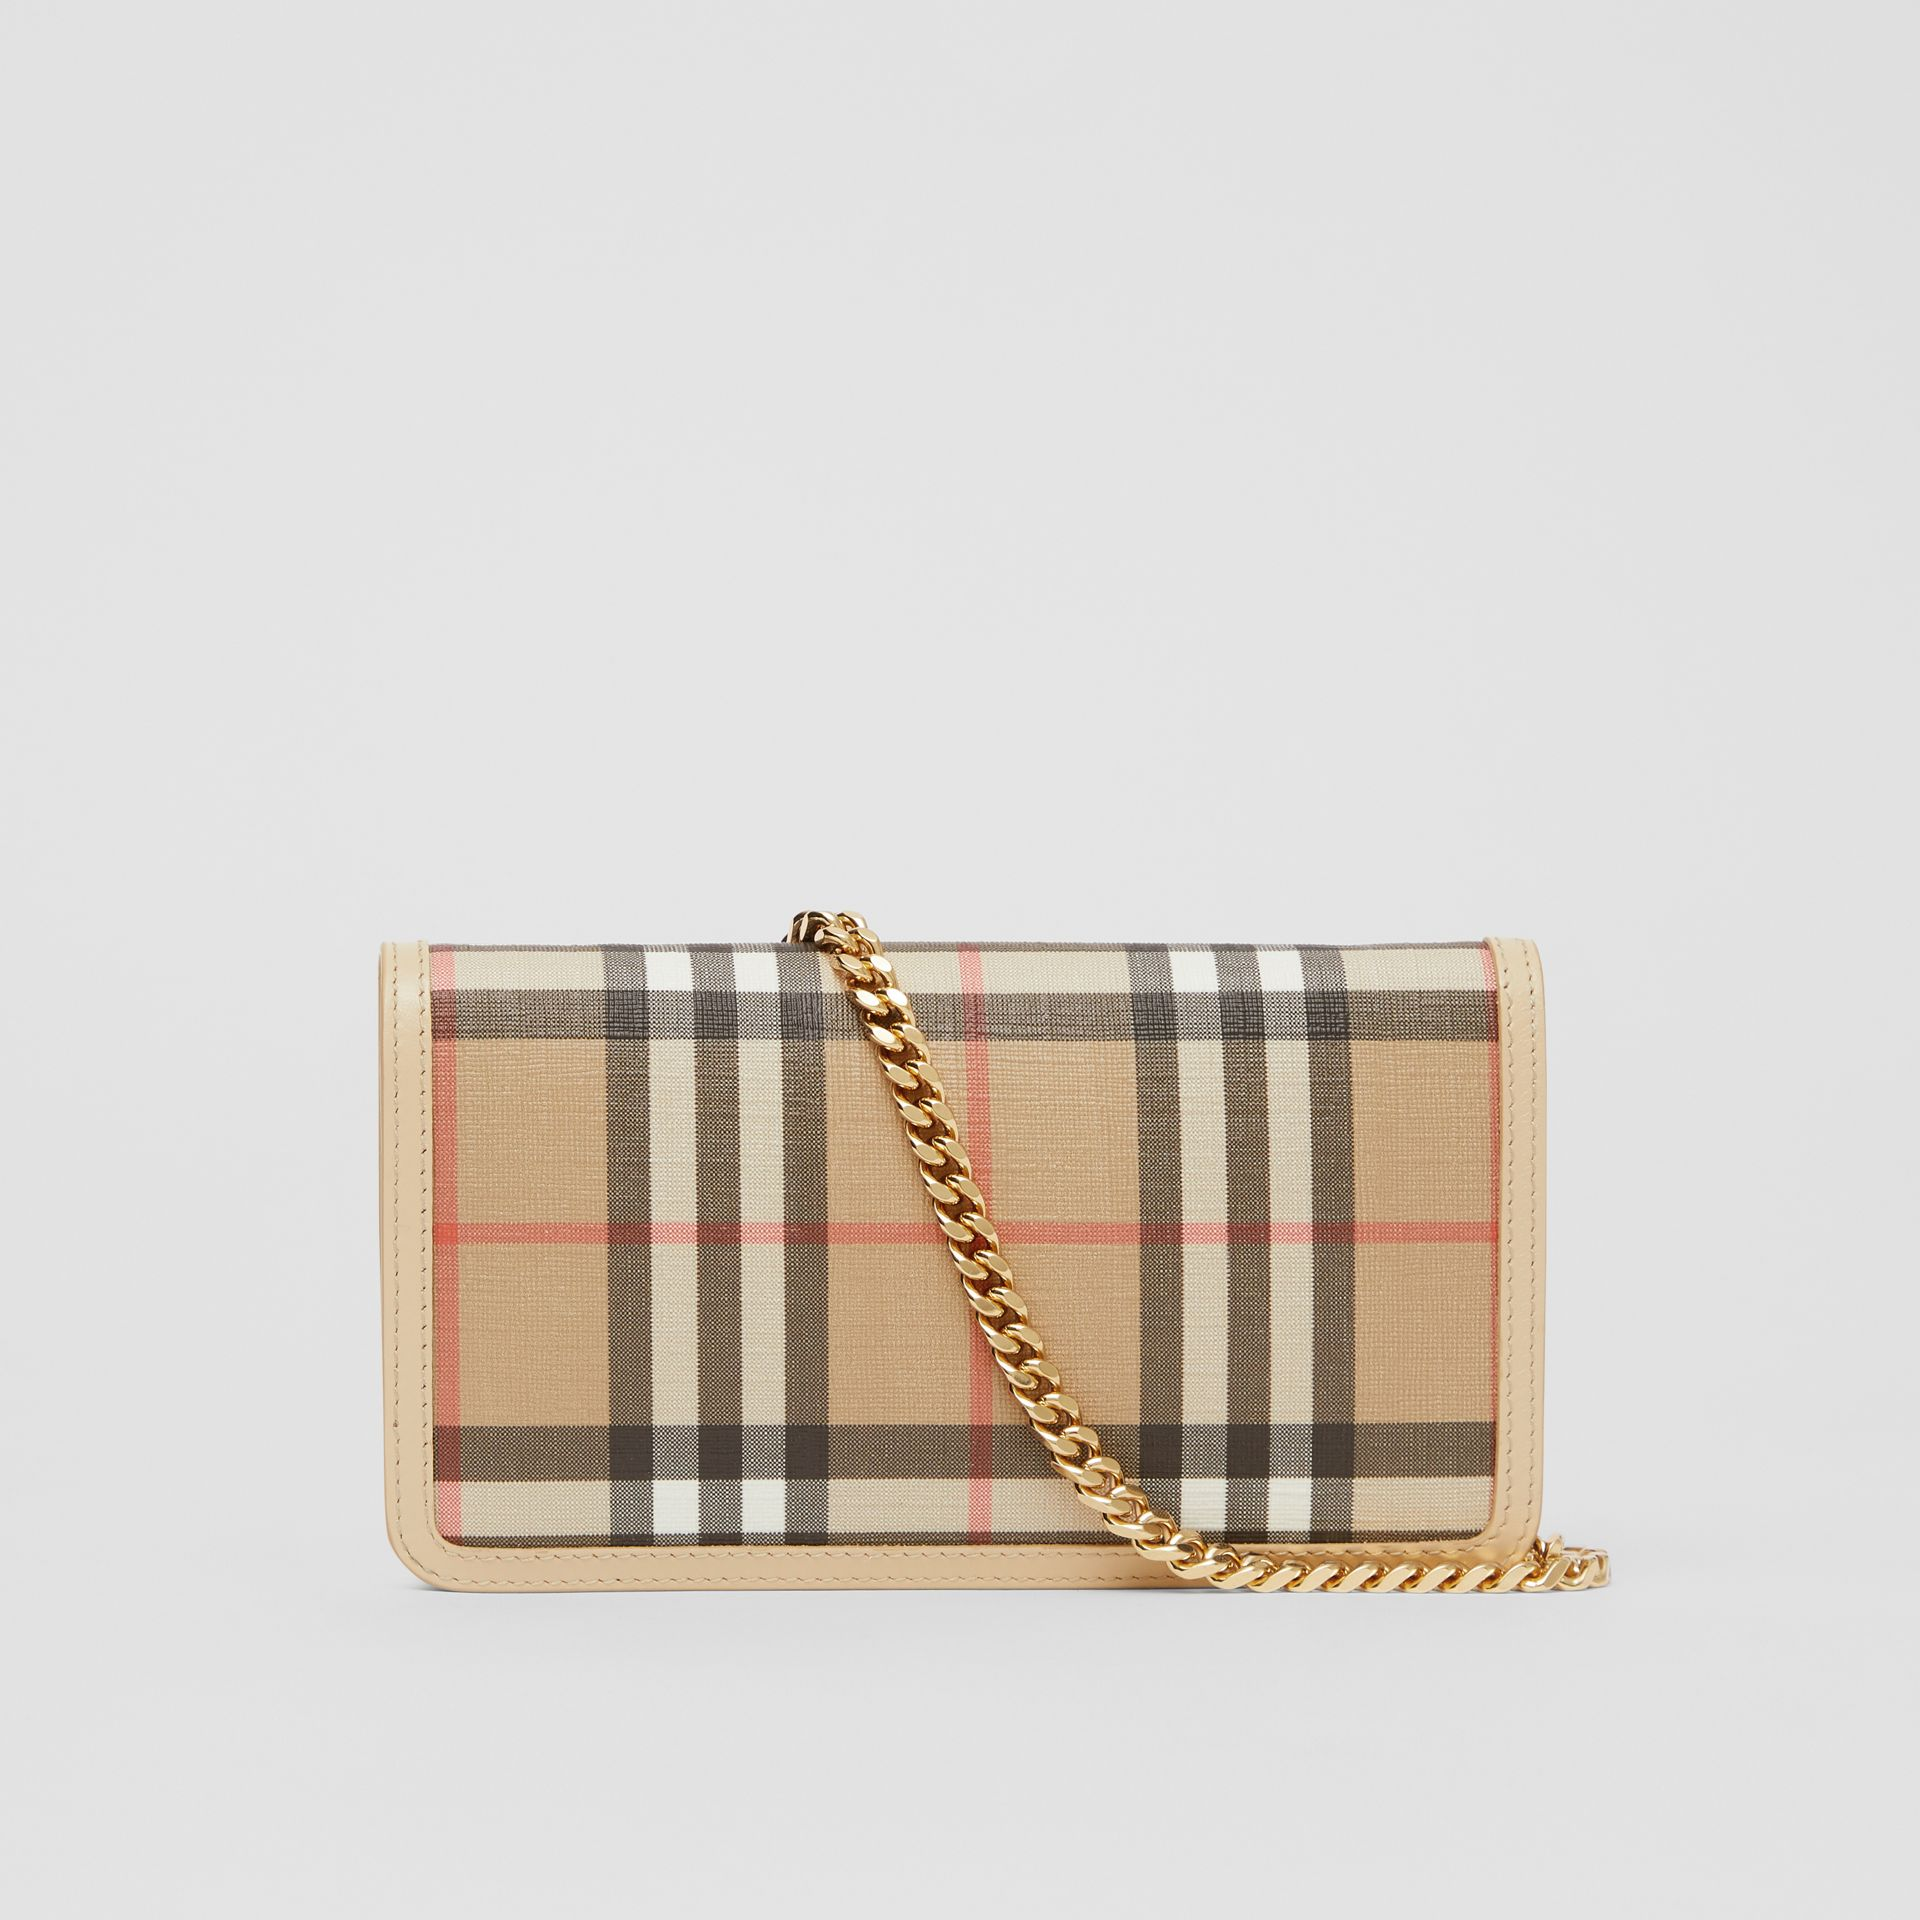 Vintage Check E-canvas Phone Wallet with Strap in Beige - Women | Burberry Singapore - gallery image 5